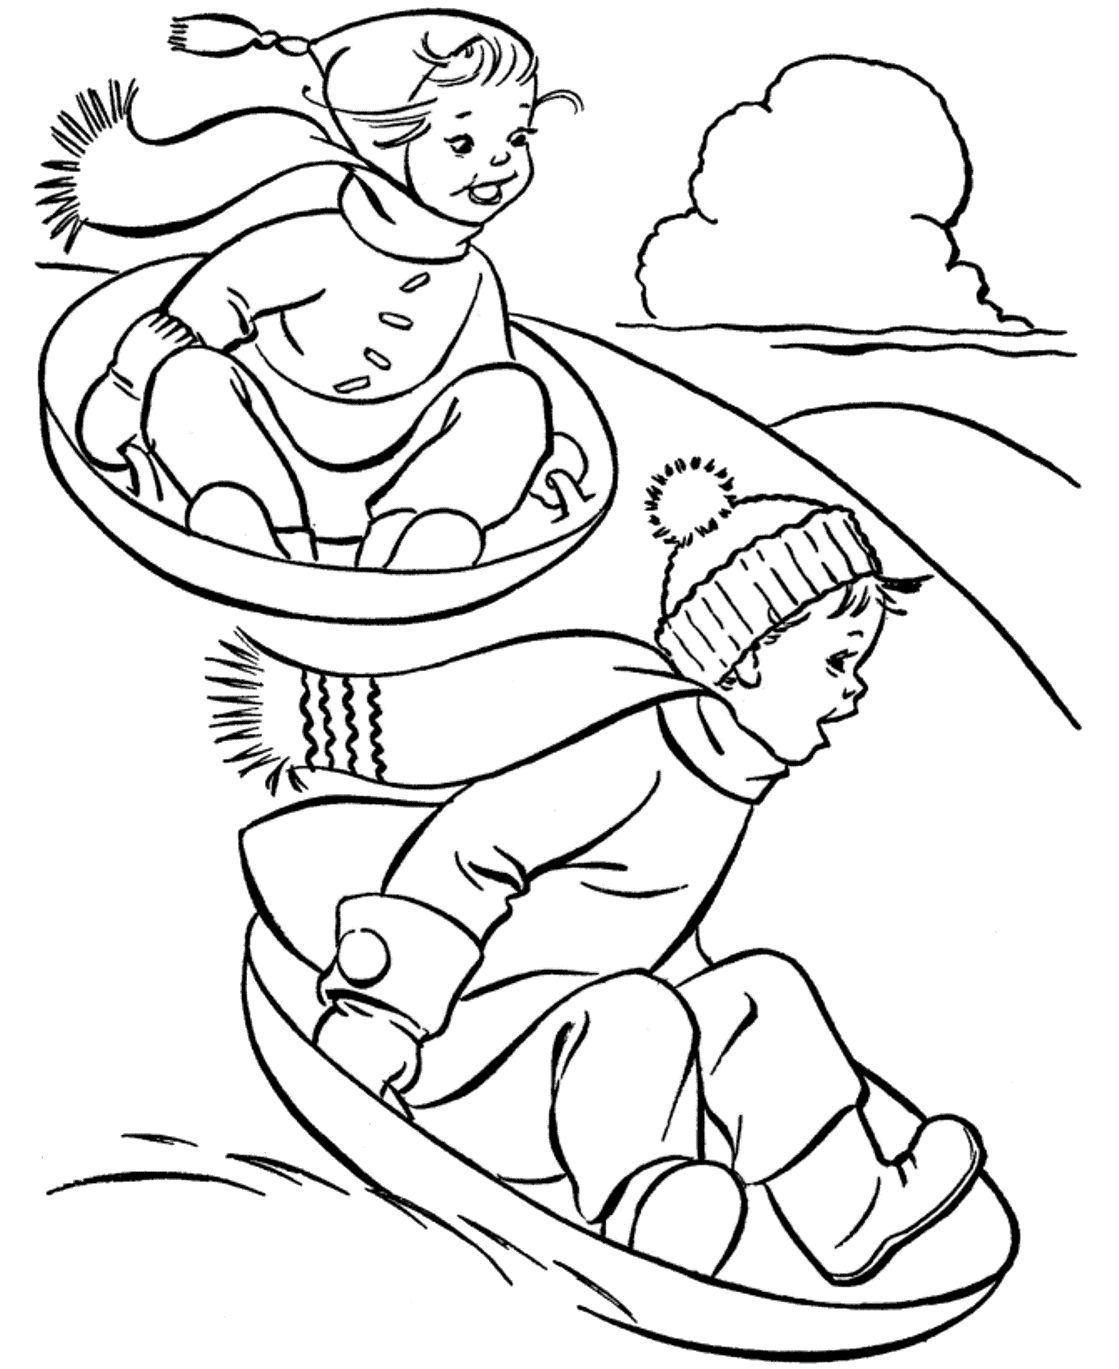 Sports Photograph Coloring Pages Kids Winter Sports